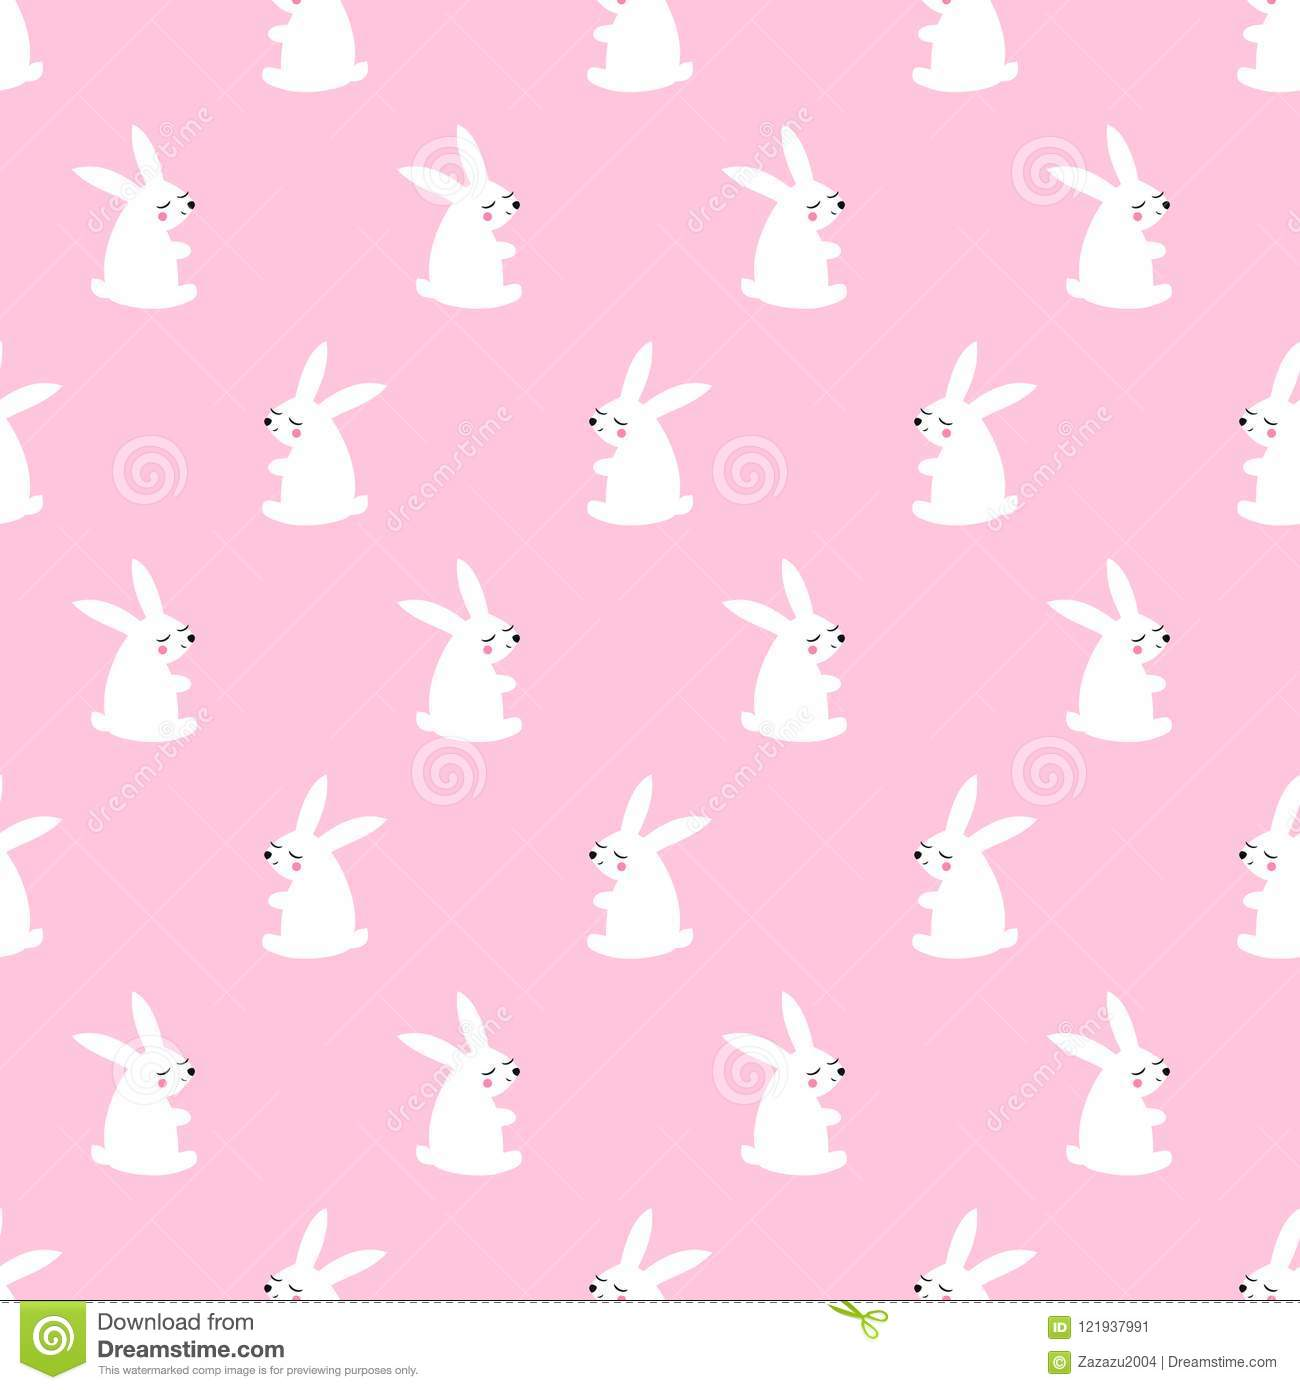 Cute White Bunny Seamless Pattern On Pink Background Stock Vector Illustration Of Cute Seamless 121937991